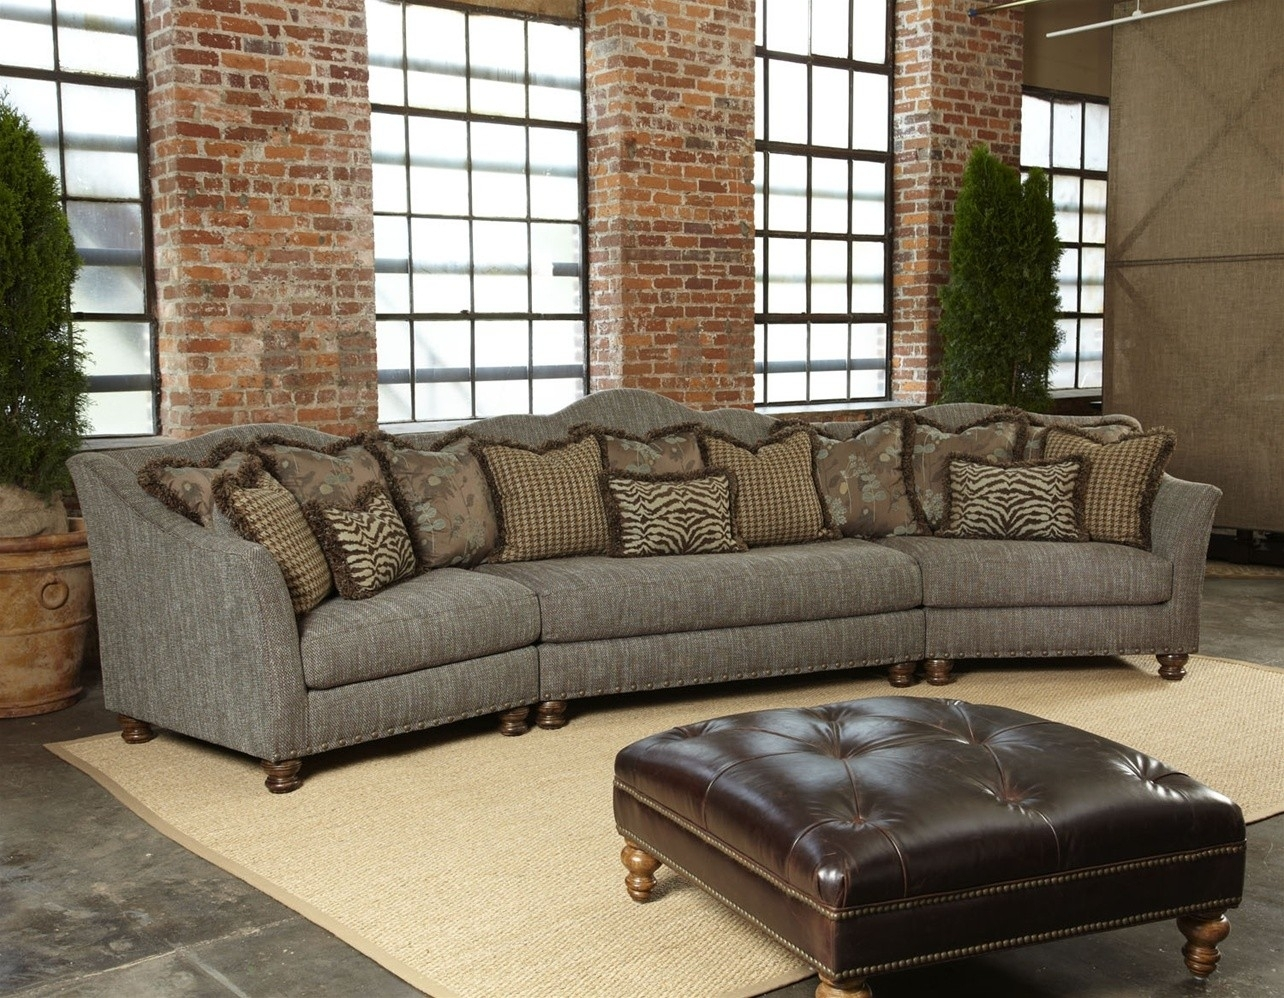 New Good Quality Sectional Sofa – Buildsimplehome Intended For Good Quality Sectional Sofas (View 3 of 10)